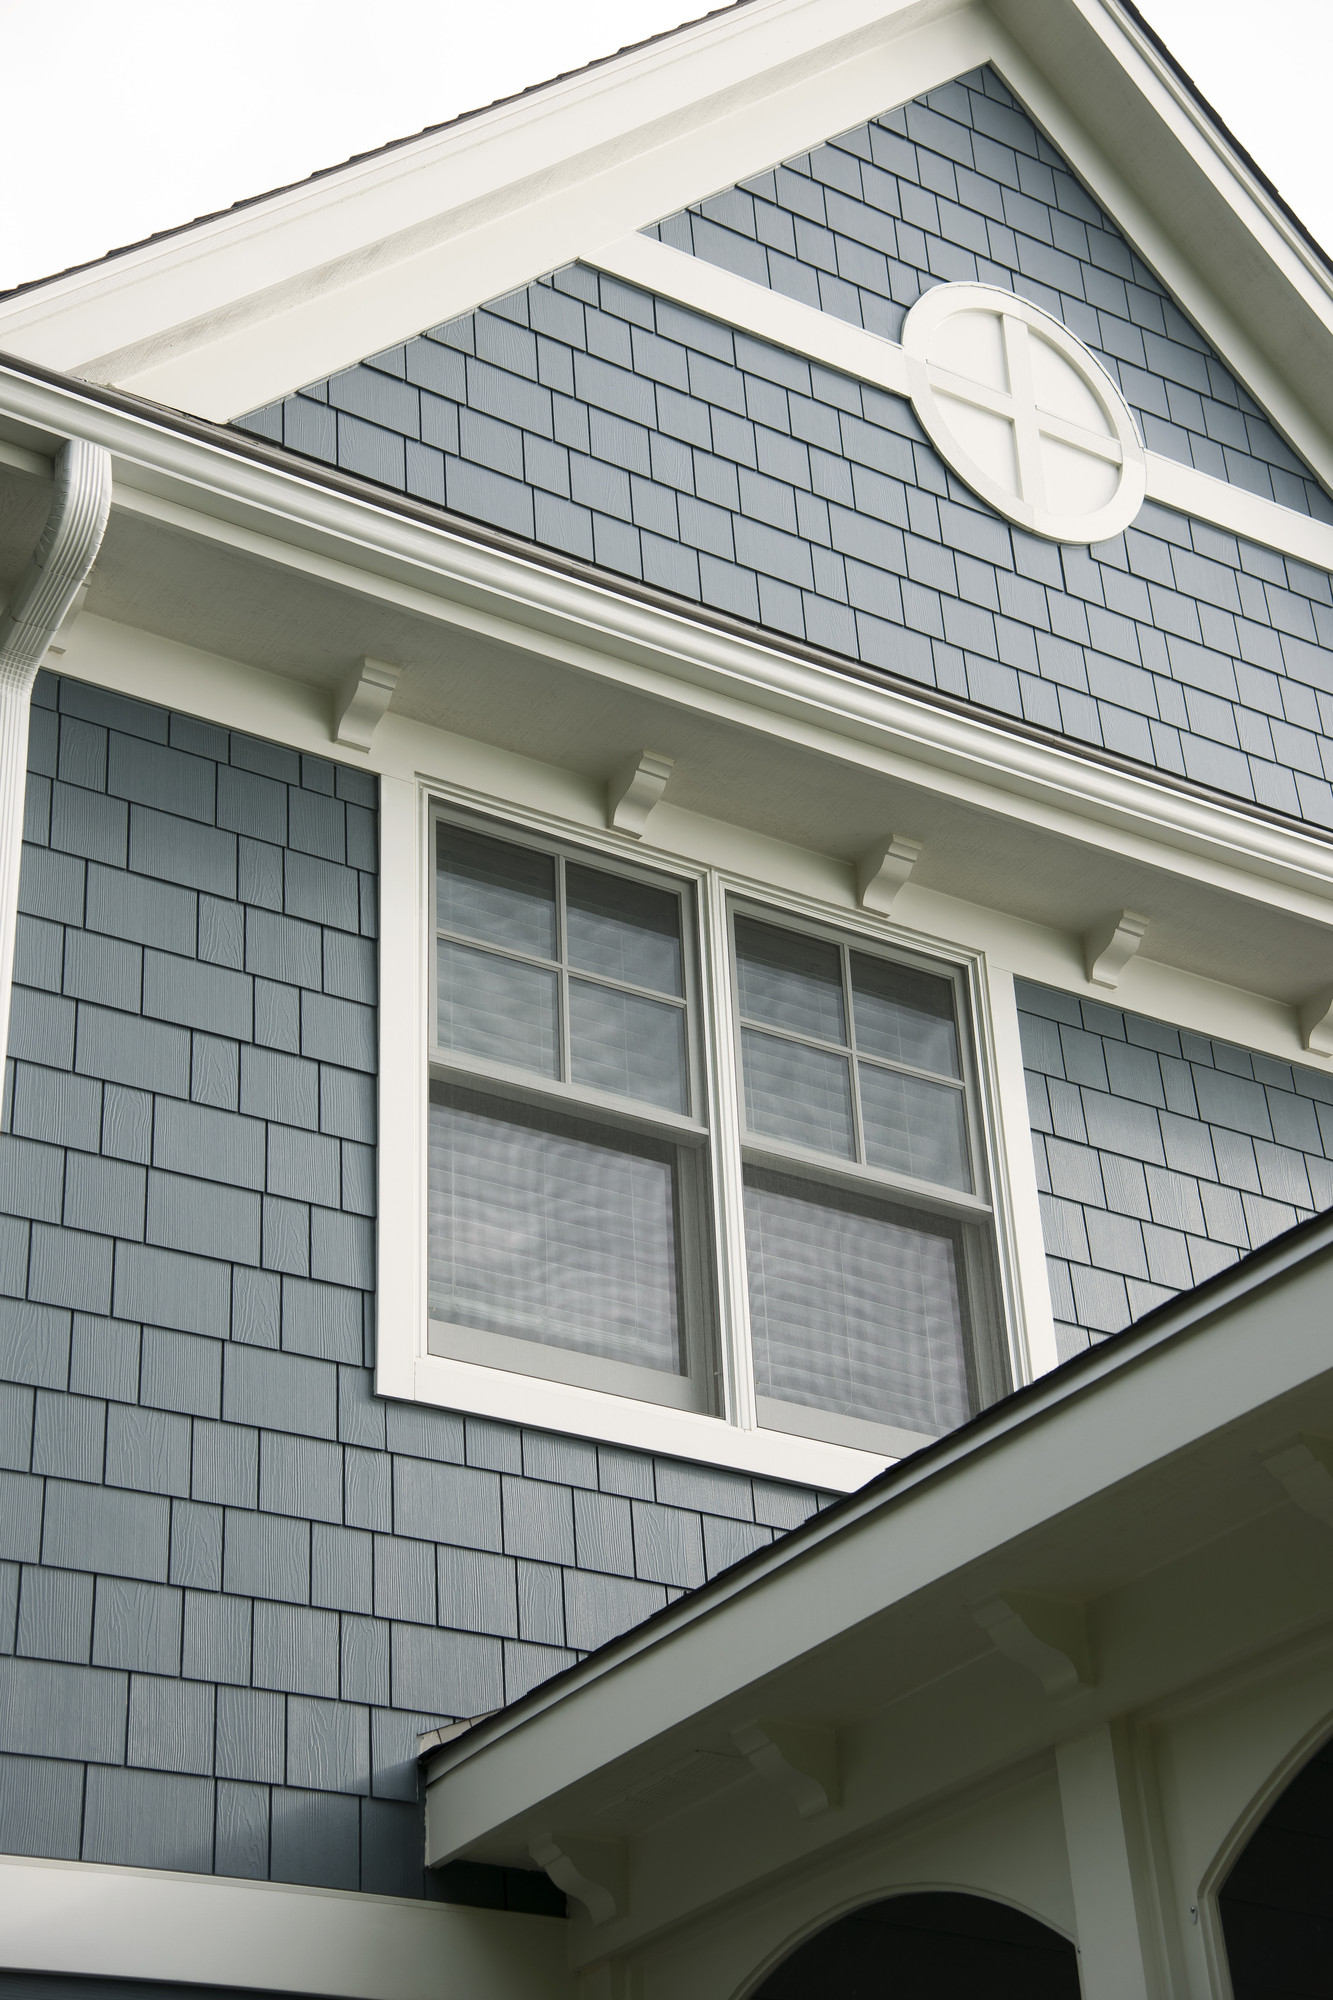 James Hardie Siding Siding Repair And Installation In